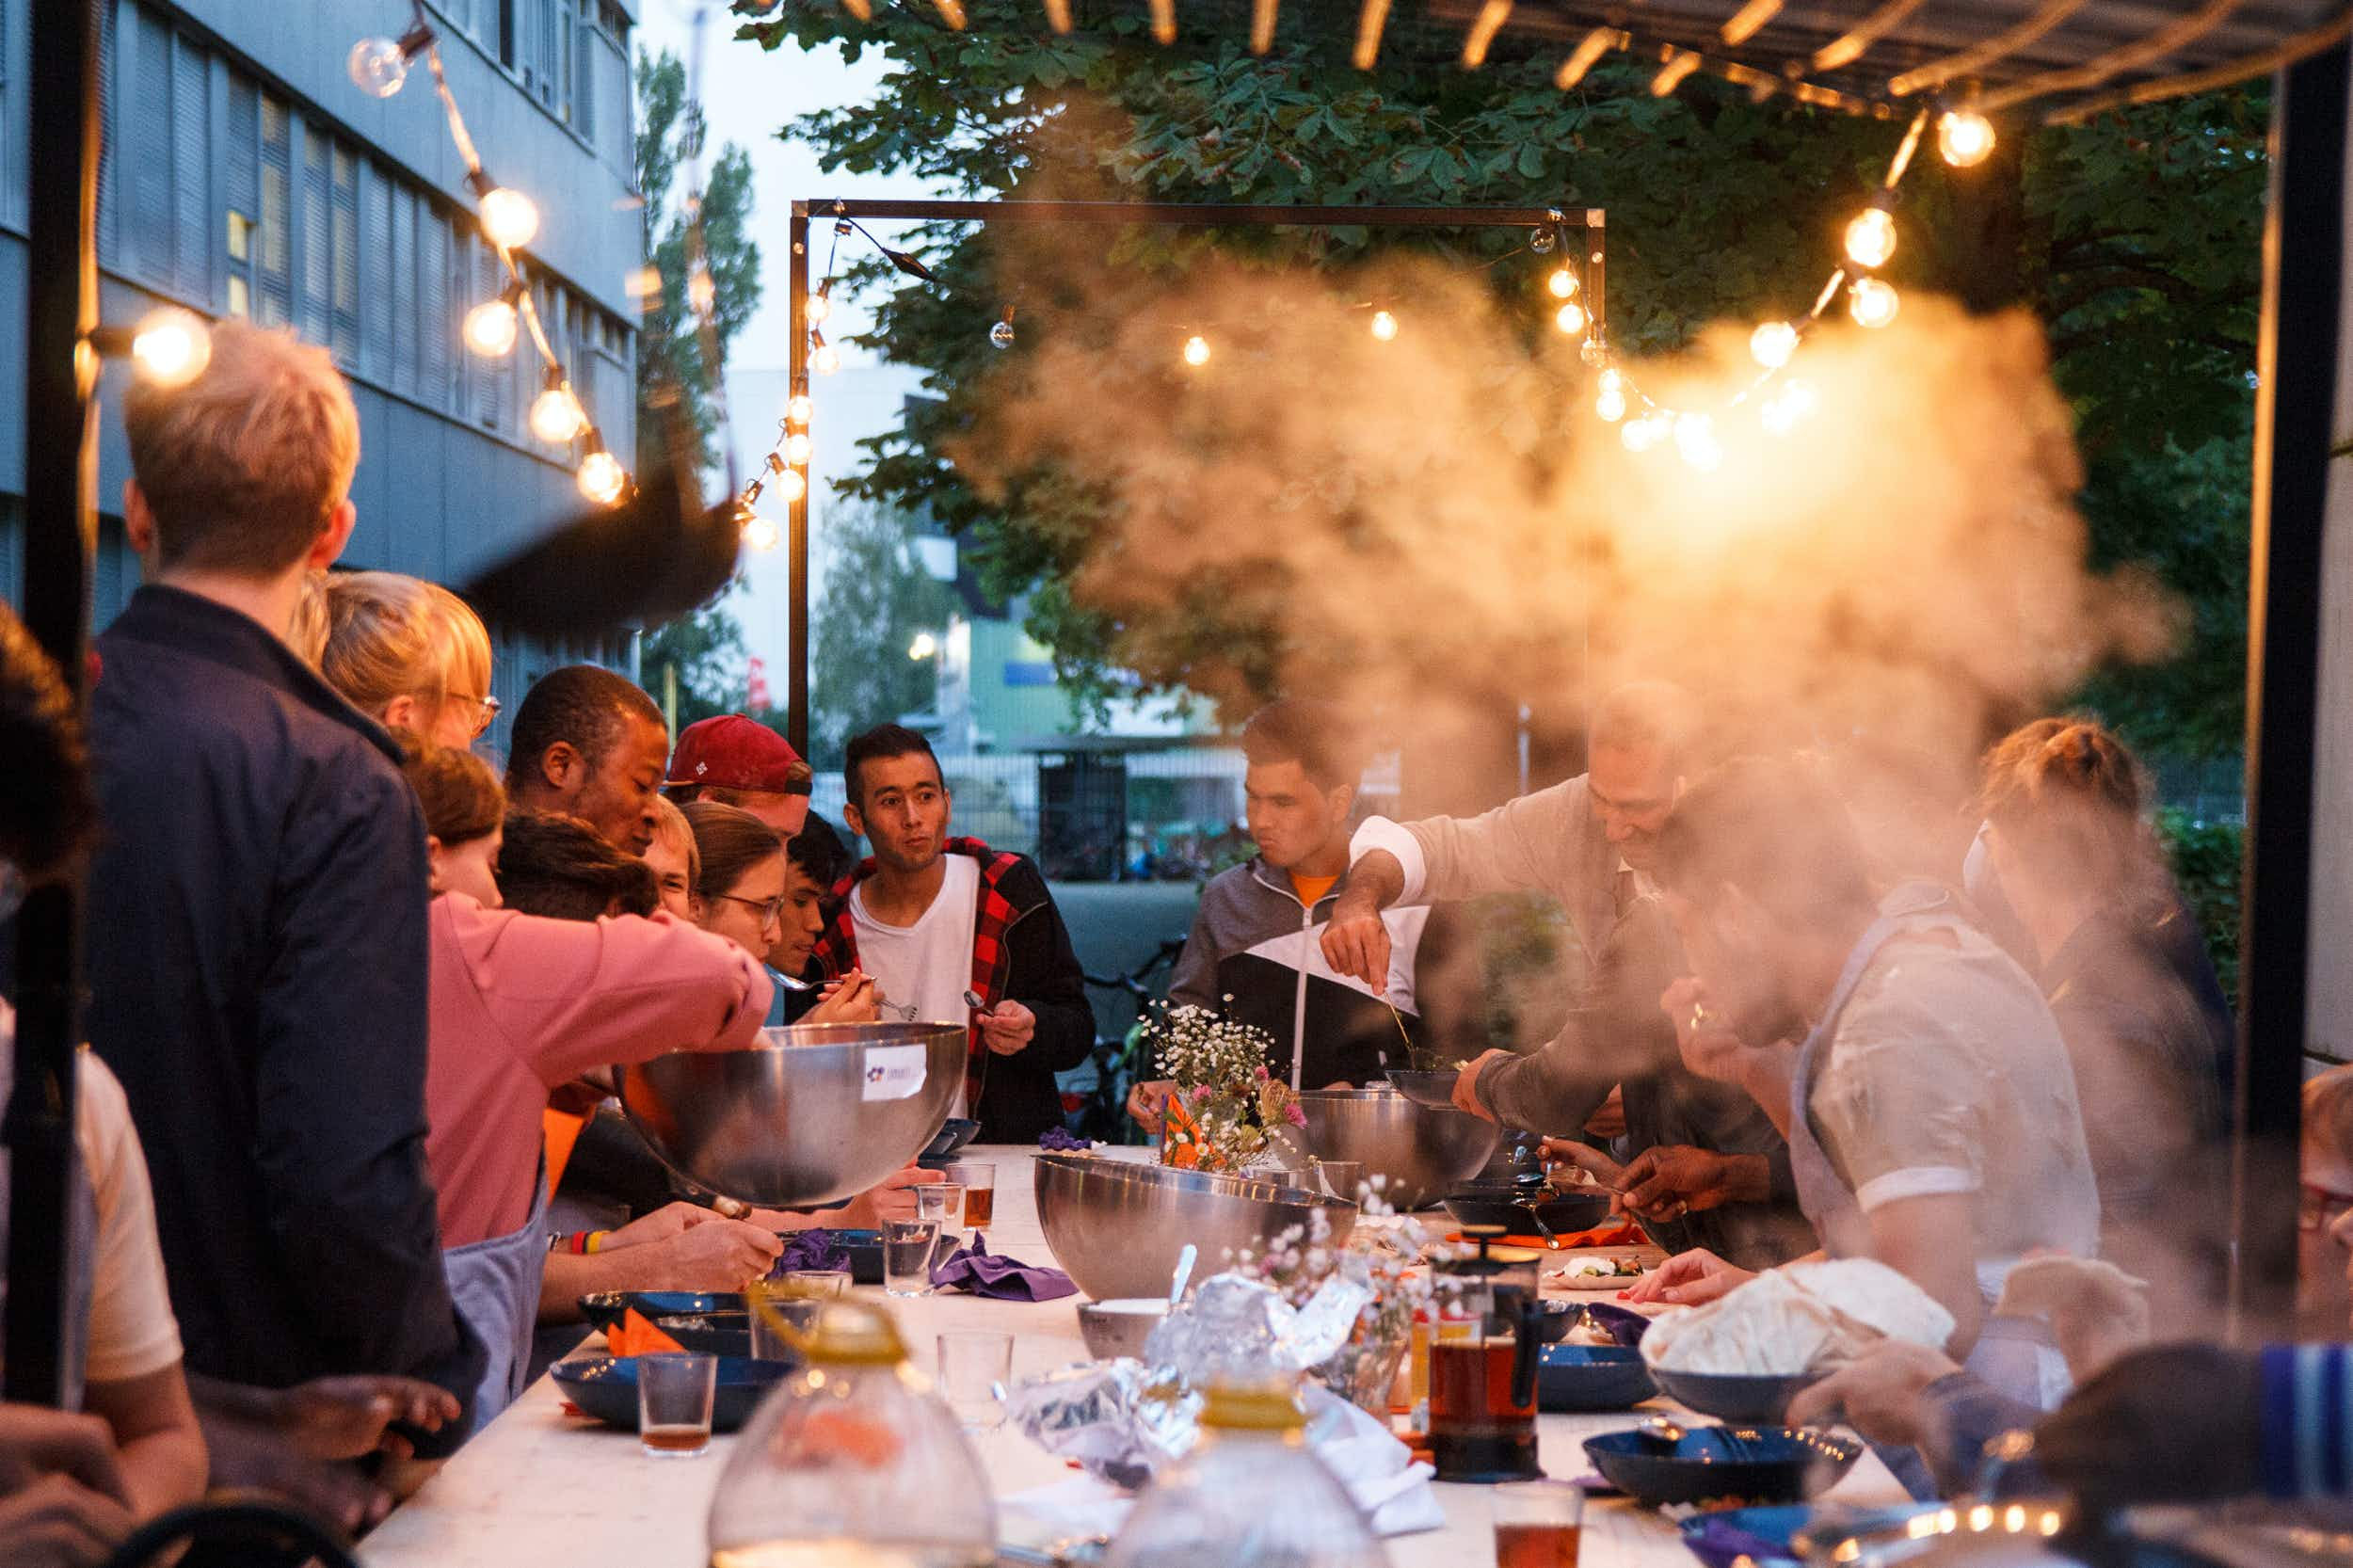 Refugees in Berlin are teaching Germans how to cook their favourite dishes